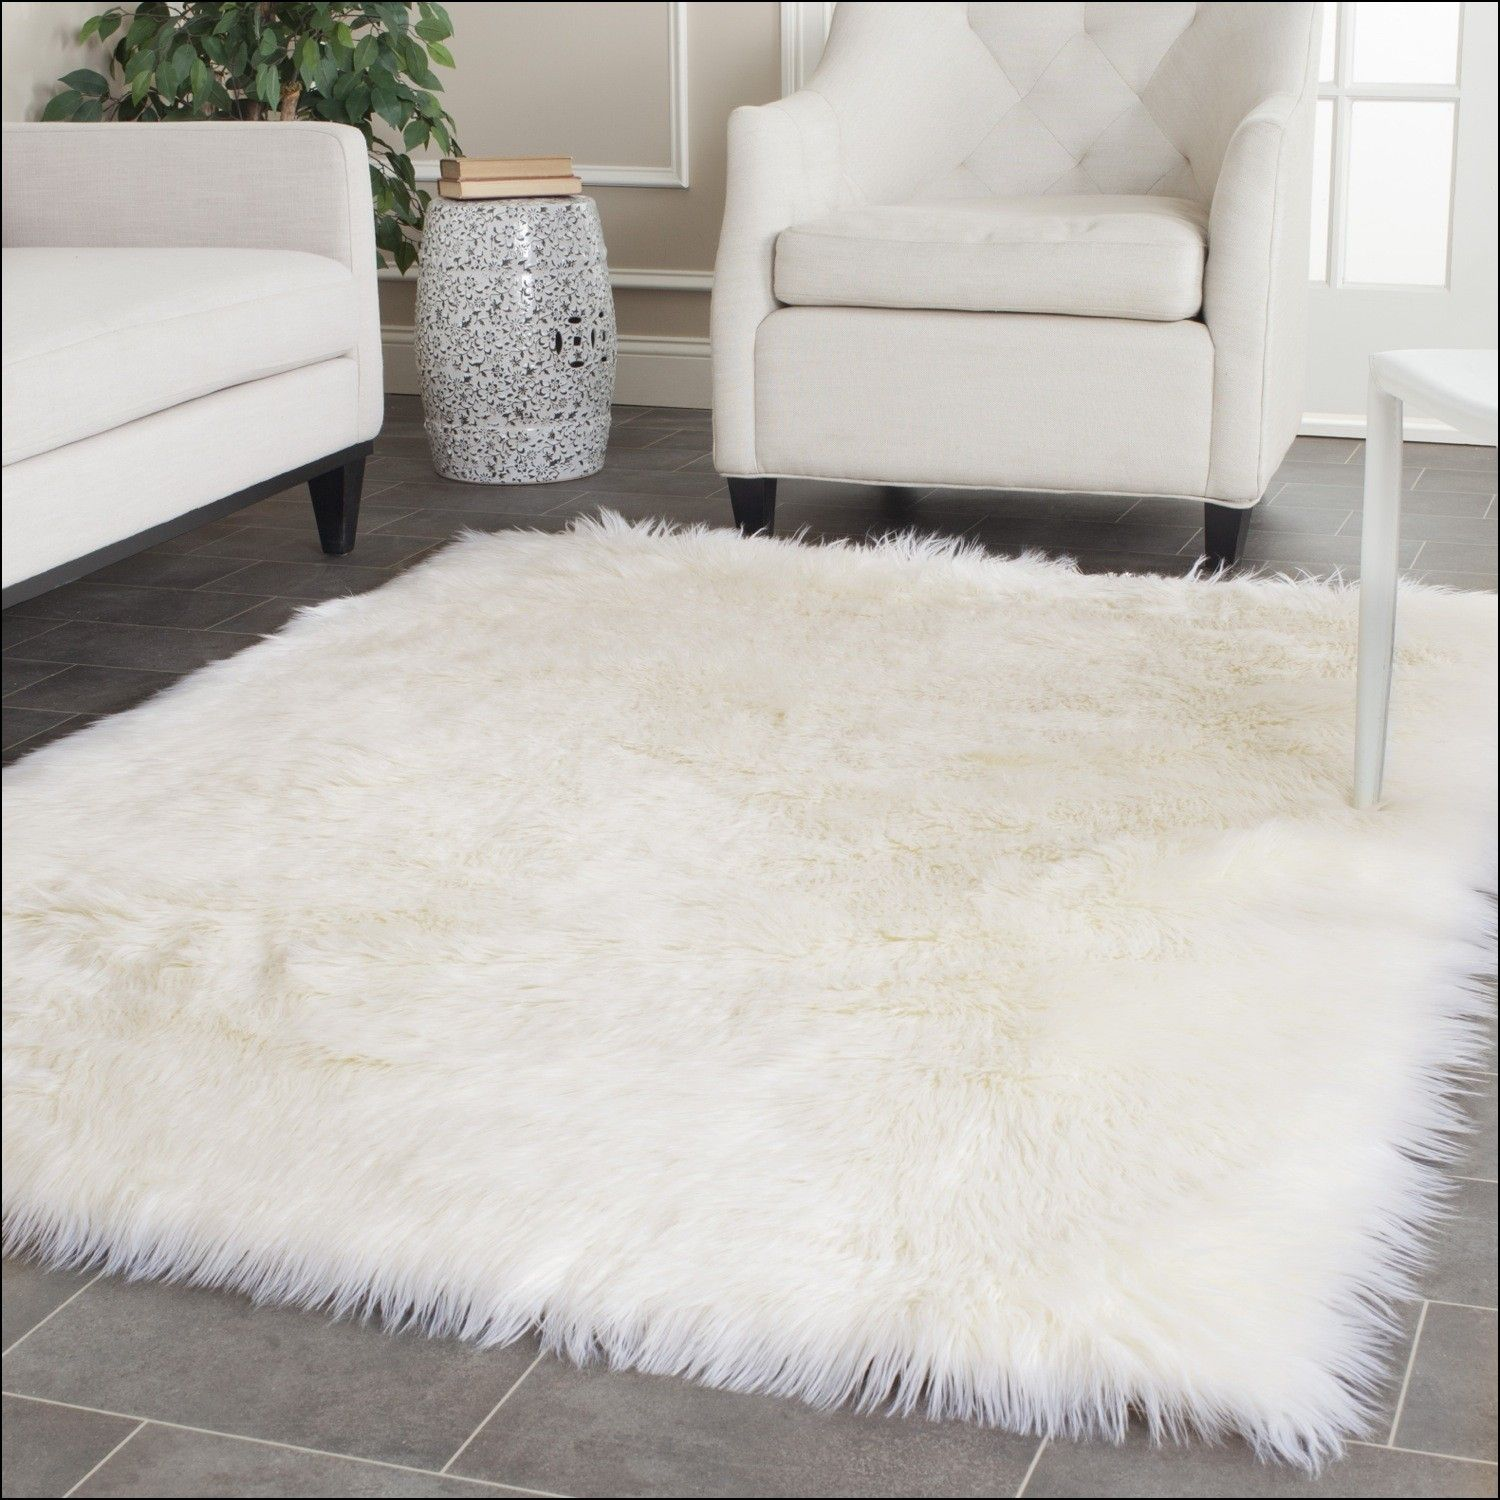 White Fluffy Rugs For Sale With Images White Faux Fur Rug White Fluffy Rug Faux Sheepskin Rug